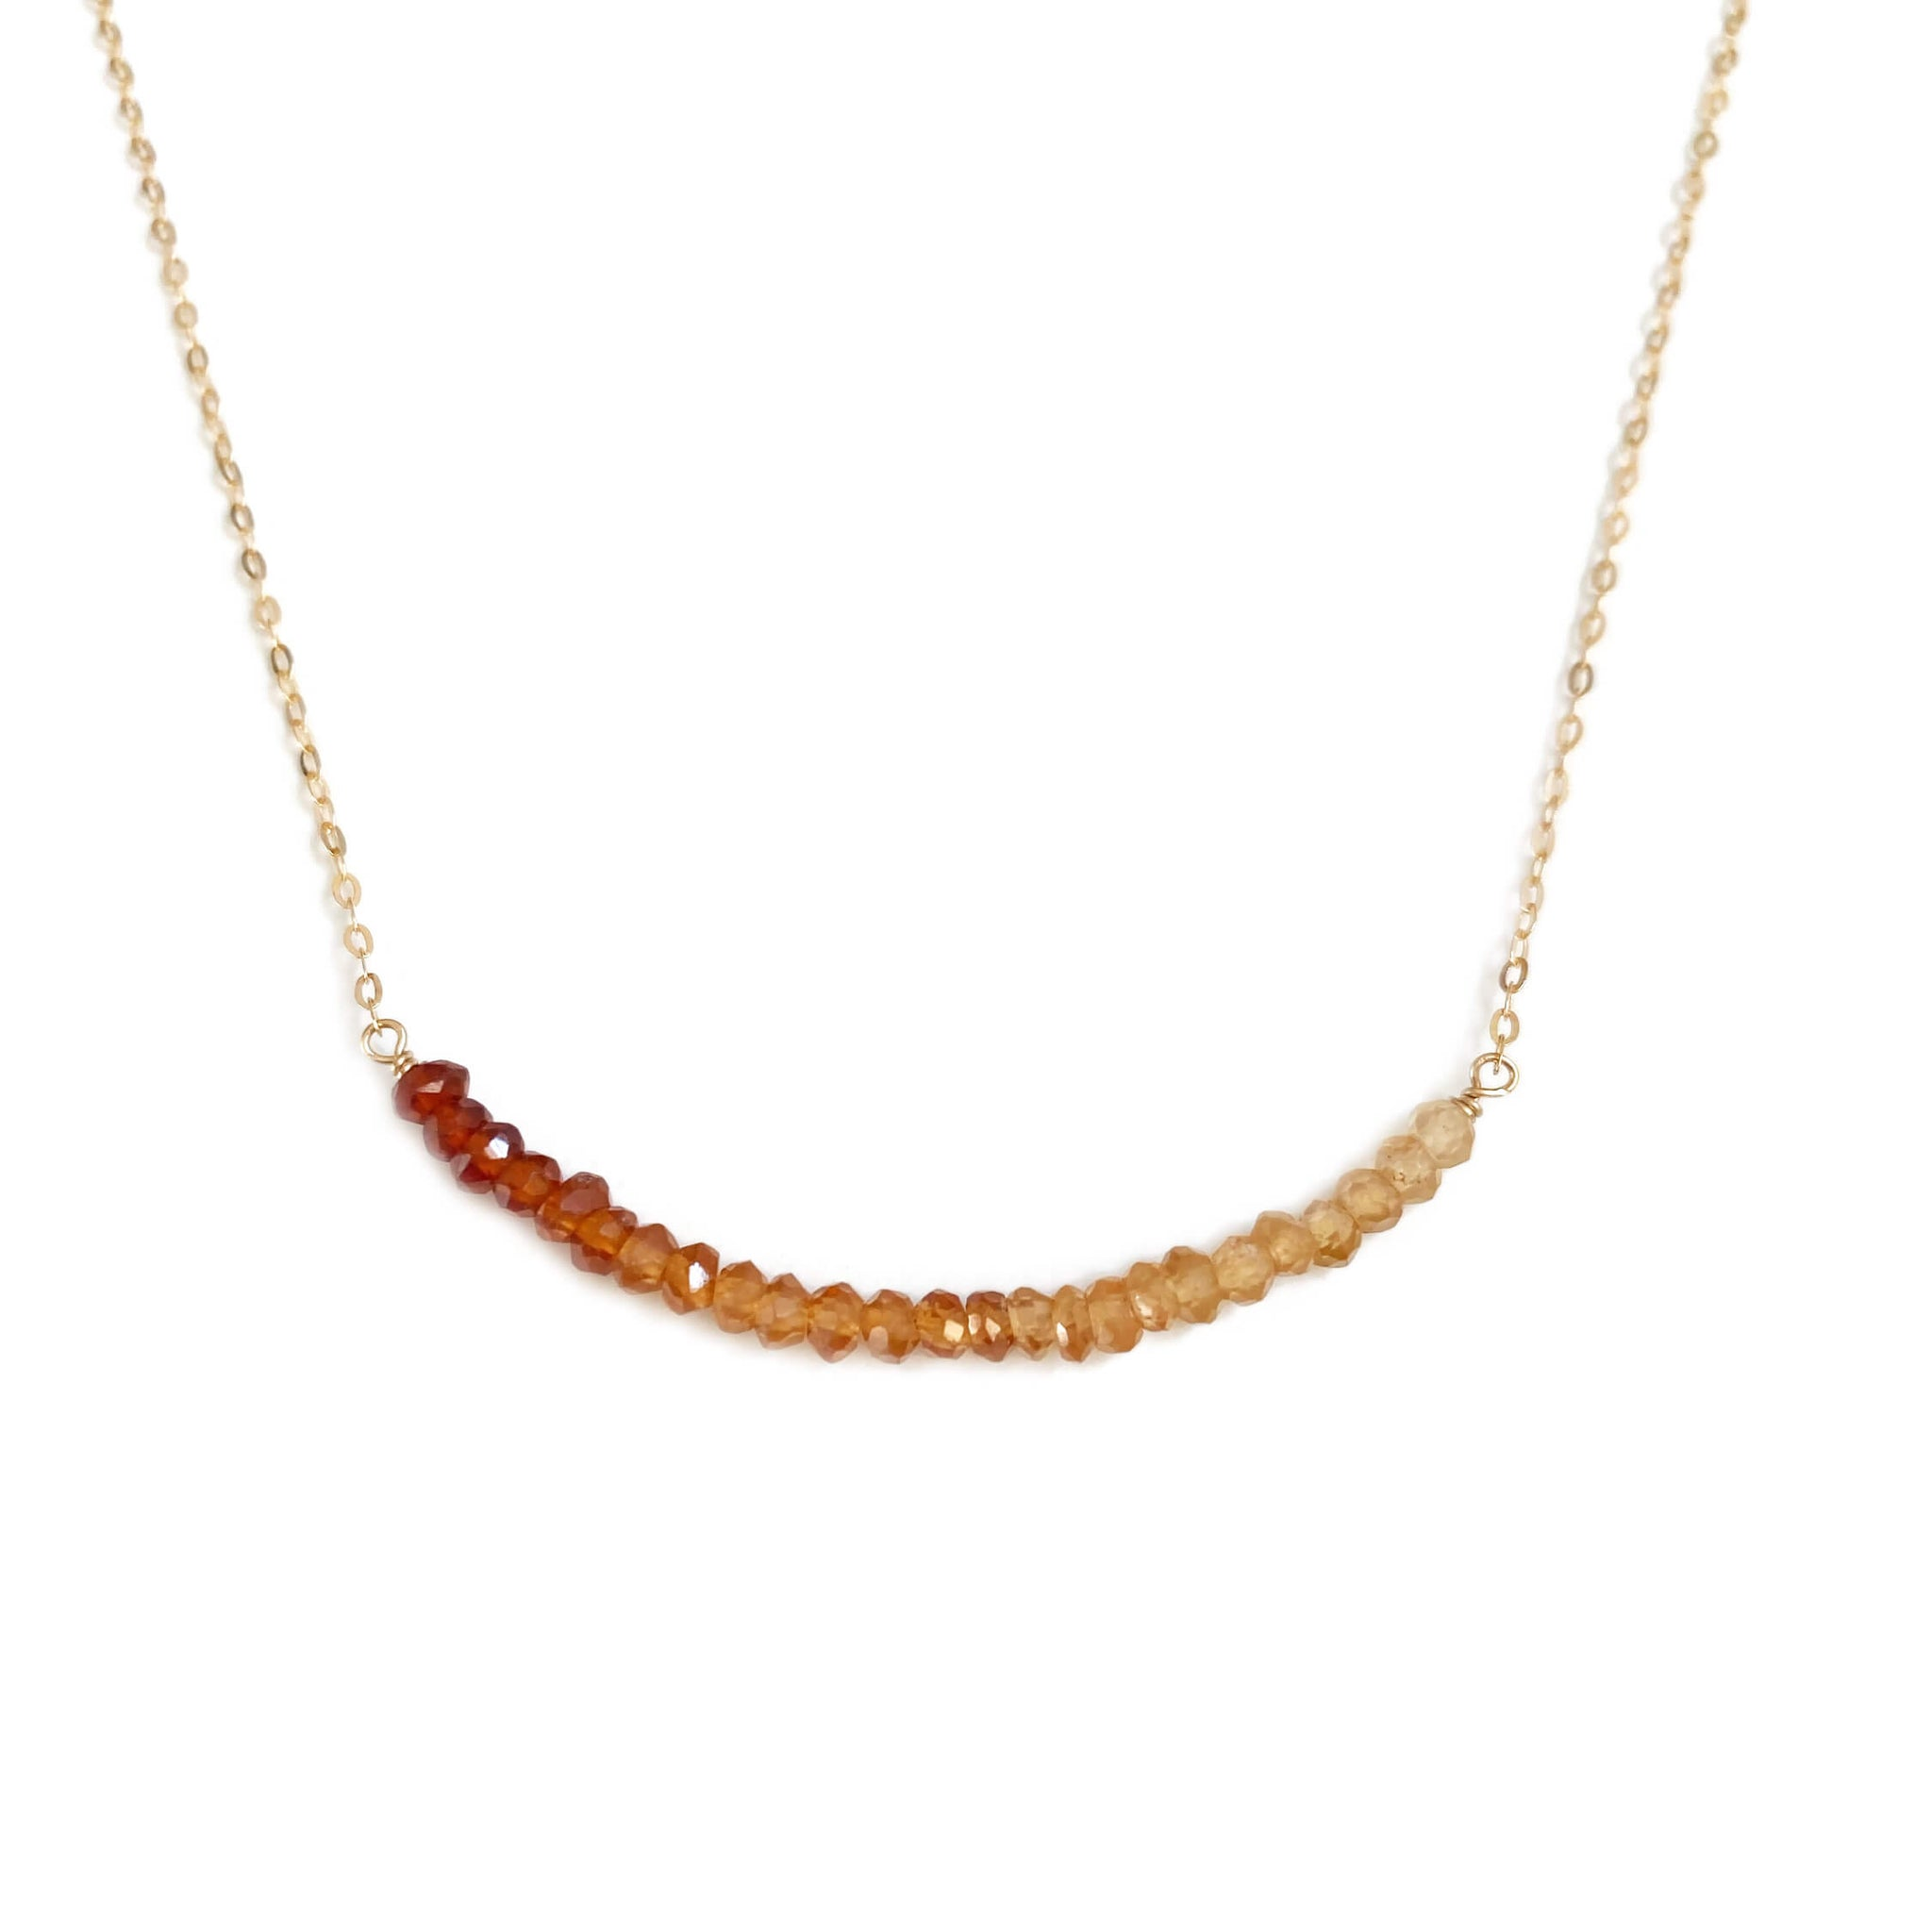 This ombre garnet necklace is made of ombre garnet and 14k gold chain. It can be made in gold filled or sterling silver chain too.